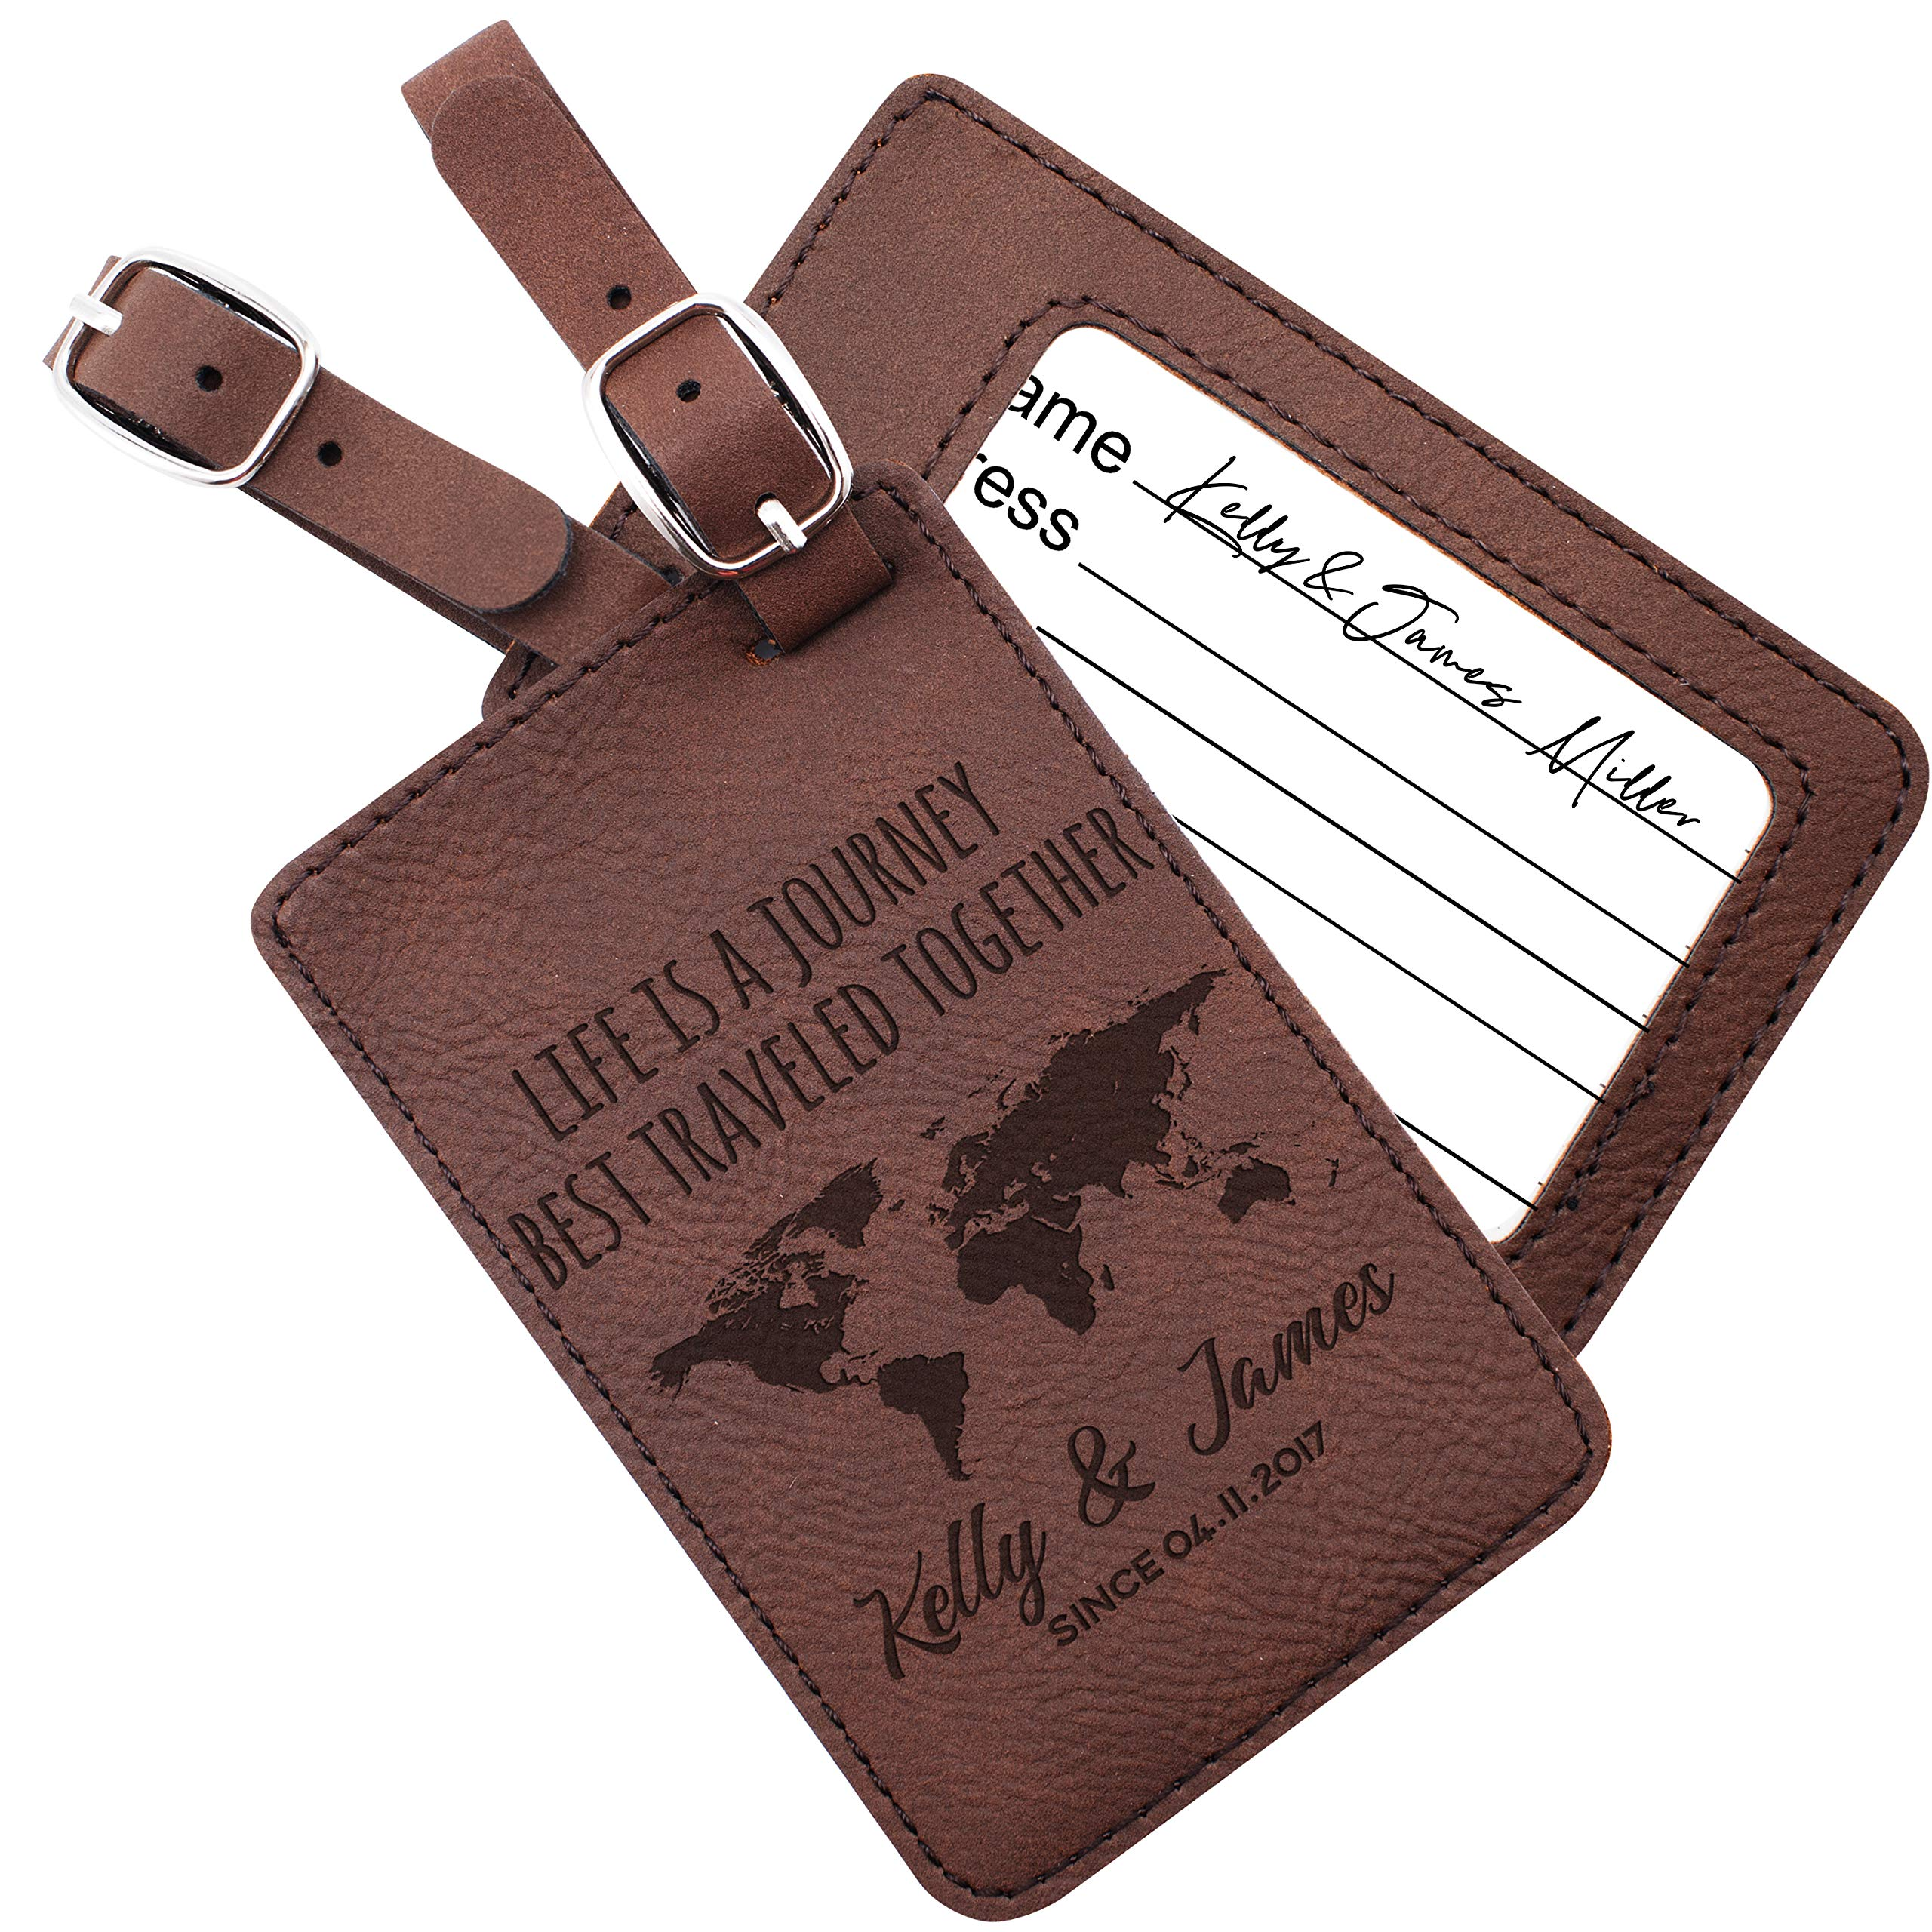 Luggage Tags Personalized Name Custom Cruise Tags For Women Men Kids Families | 6 Different Color Monogram Luggage Name Tags Christmas Gifts For Travelers Leatherette Suitcase Tag Travel Bag Label #9